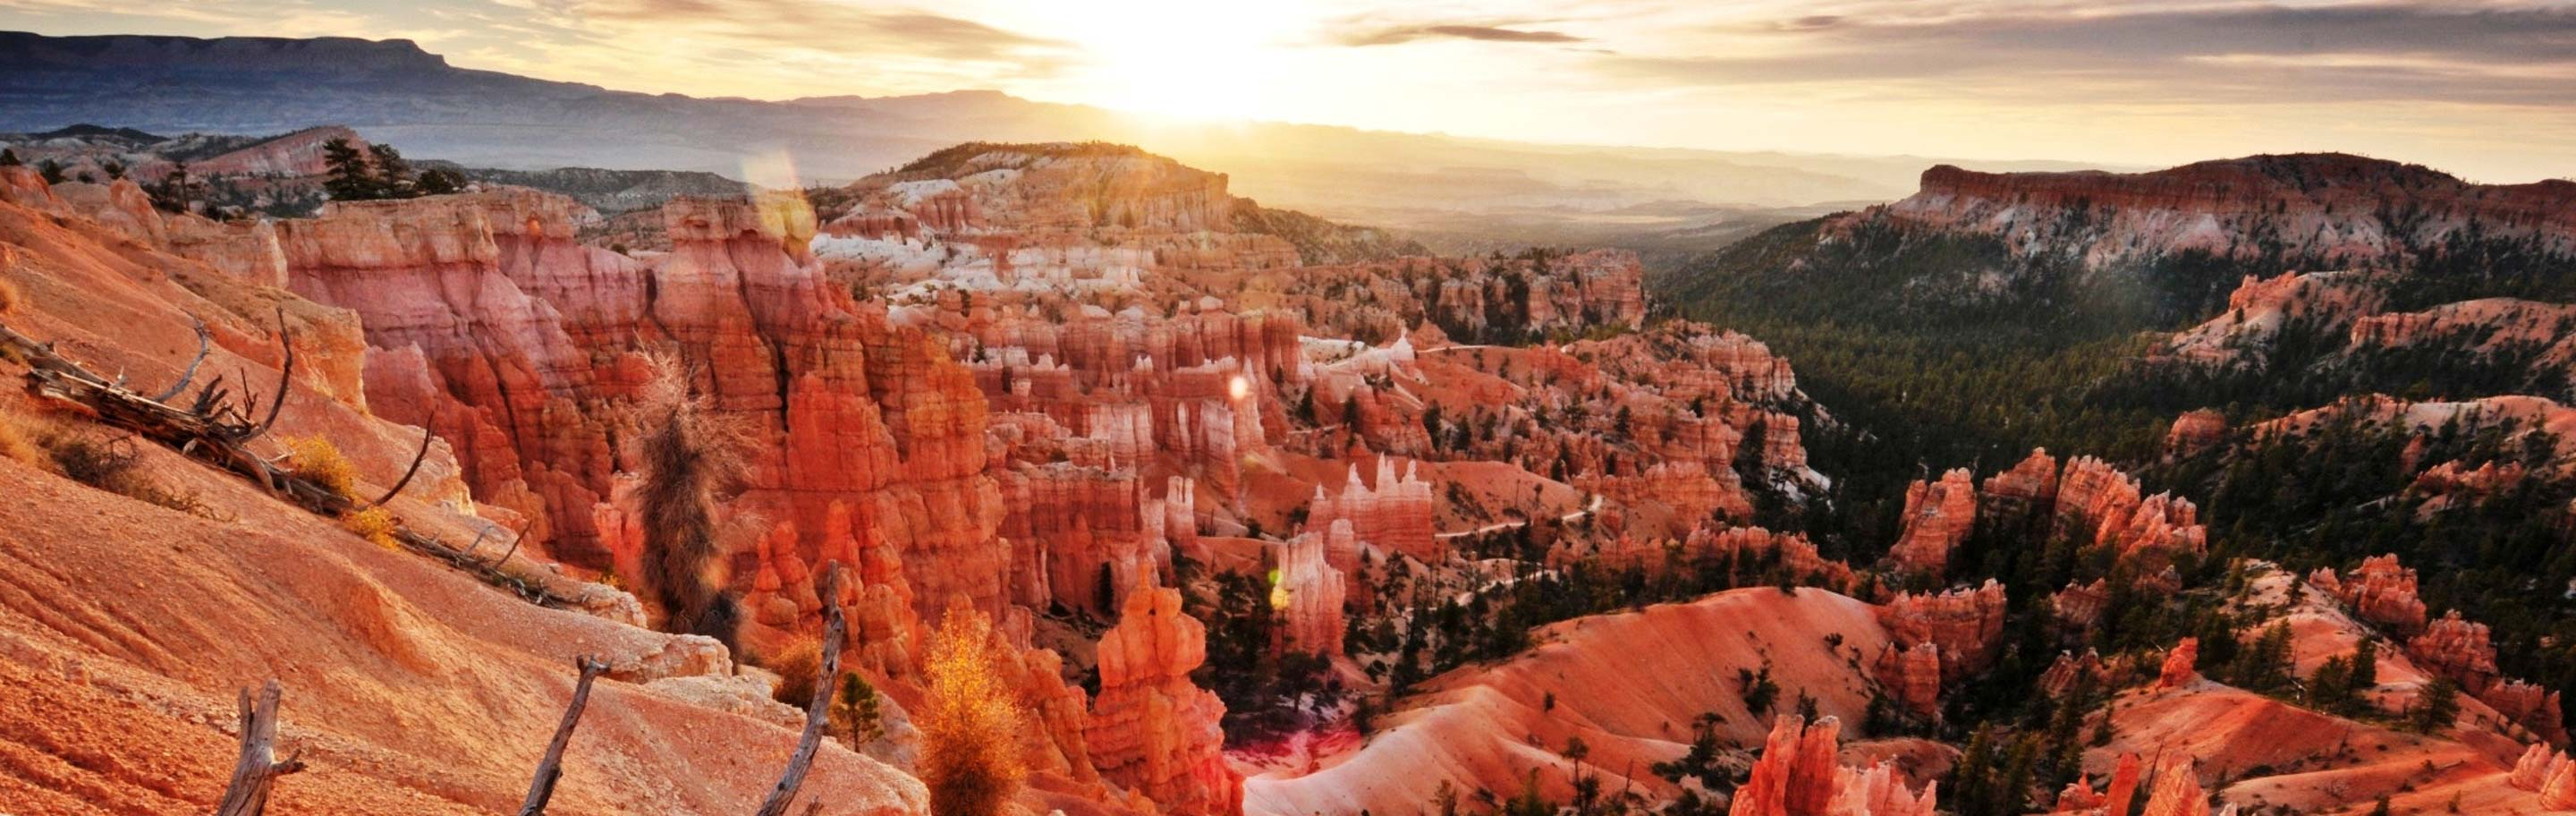 Overlook view of Bryce Canyon National Park at sunset